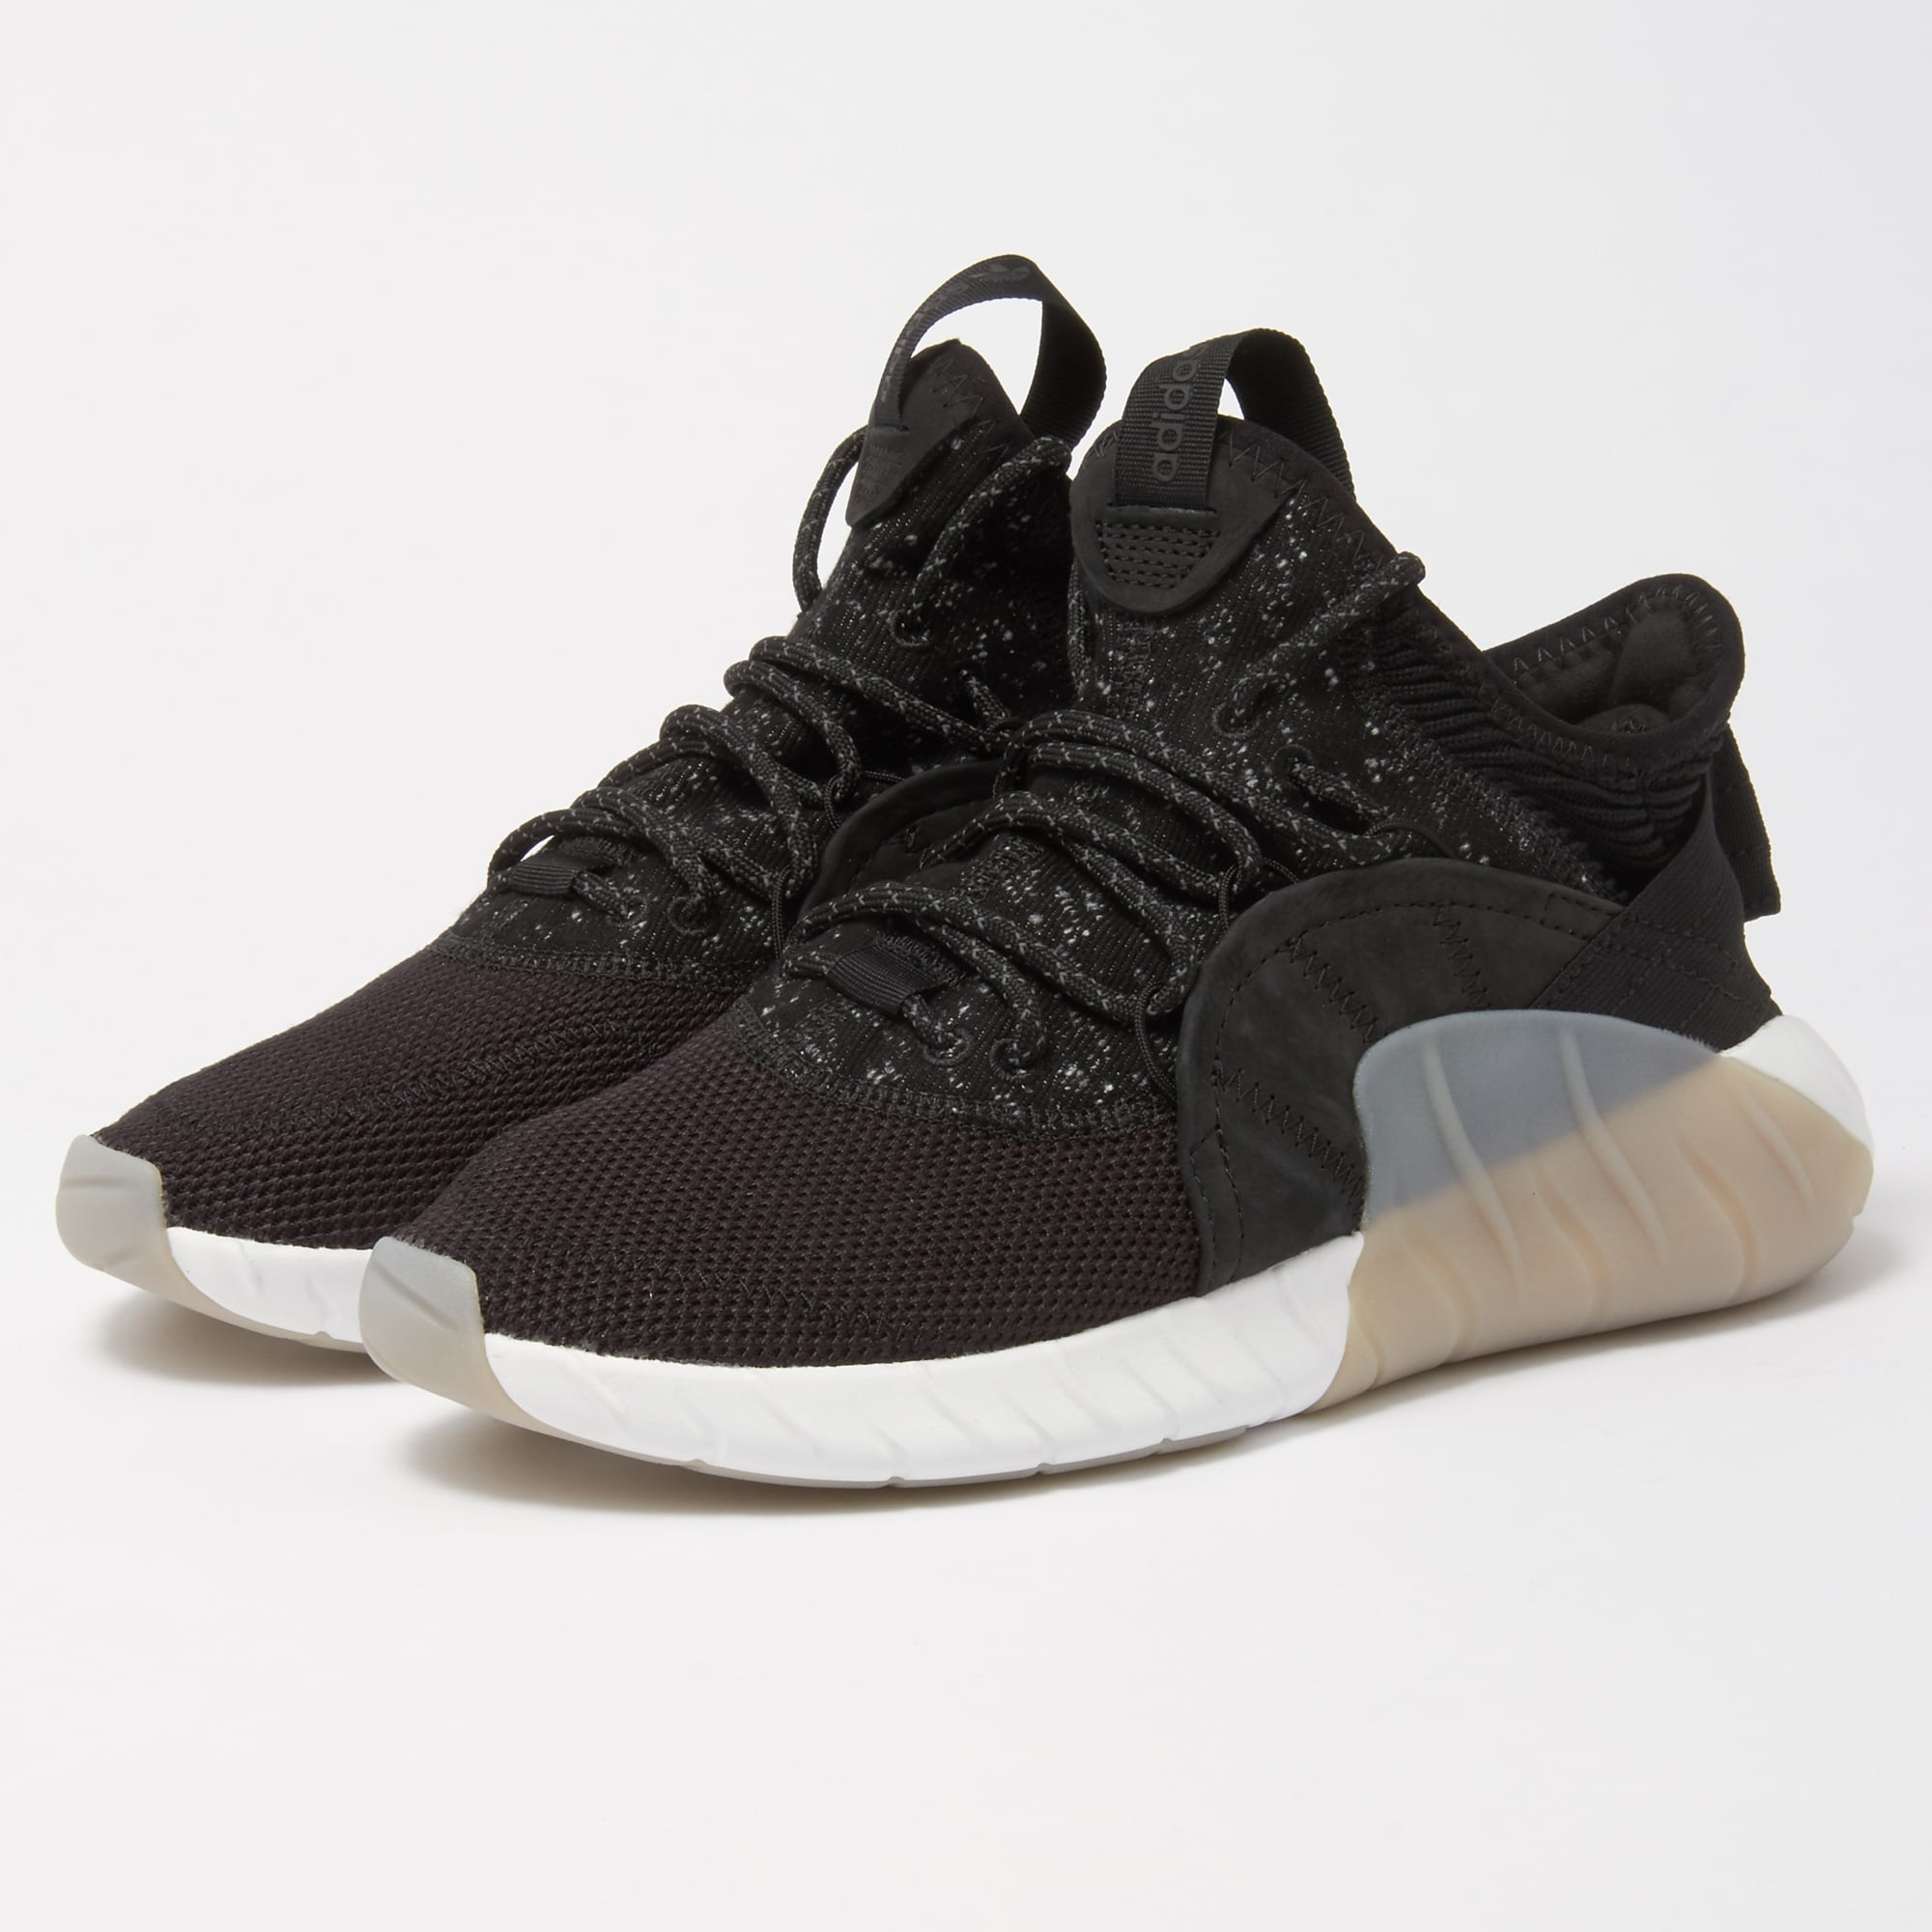 Cheap Adidas originals Cheap Adidas Tubular X 2.0 Primeknit Core Black/ Grey Four